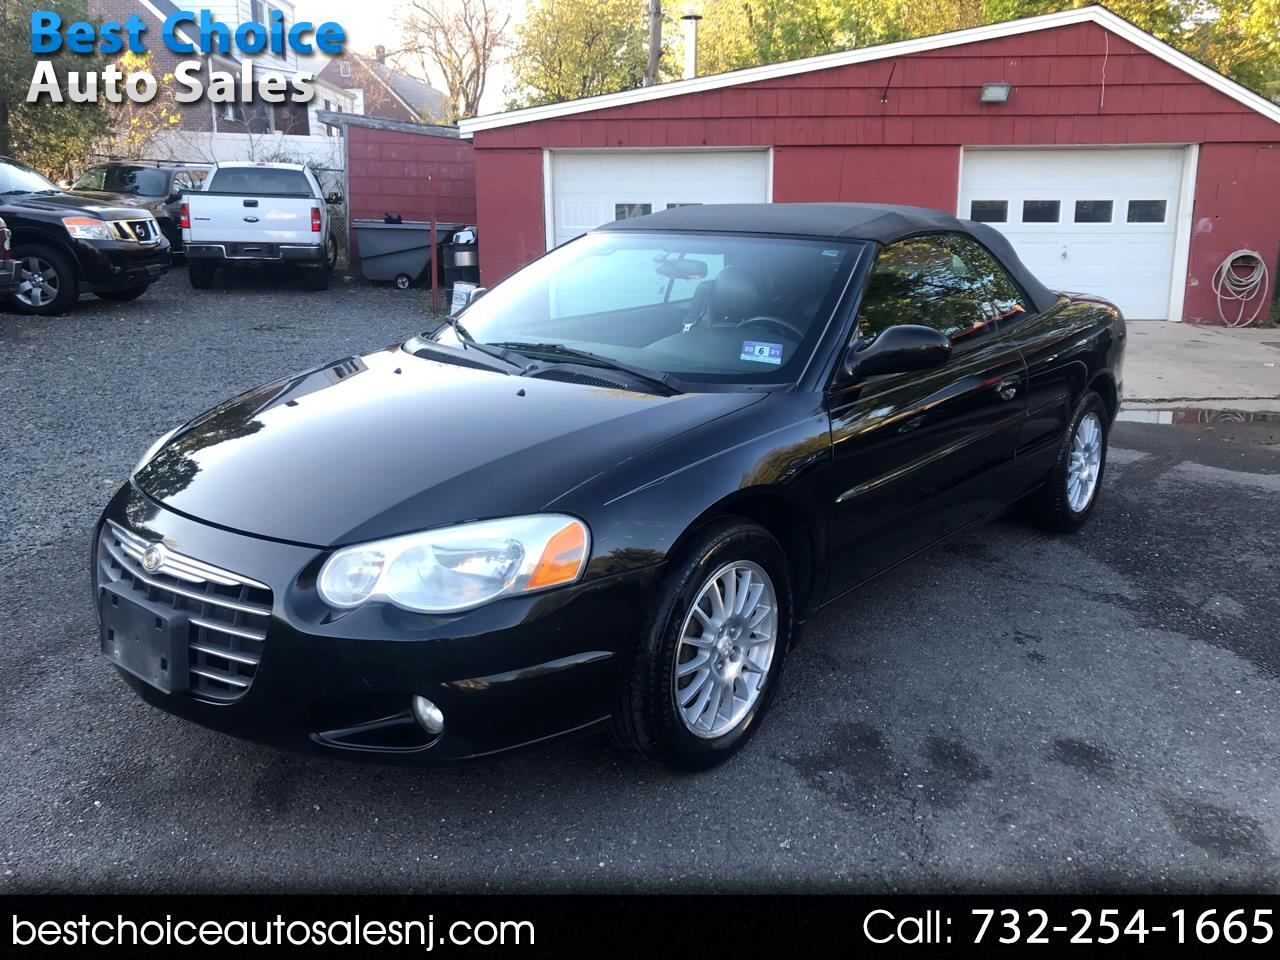 Chrysler Sebring 2004 2dr Convertible LXi 2004